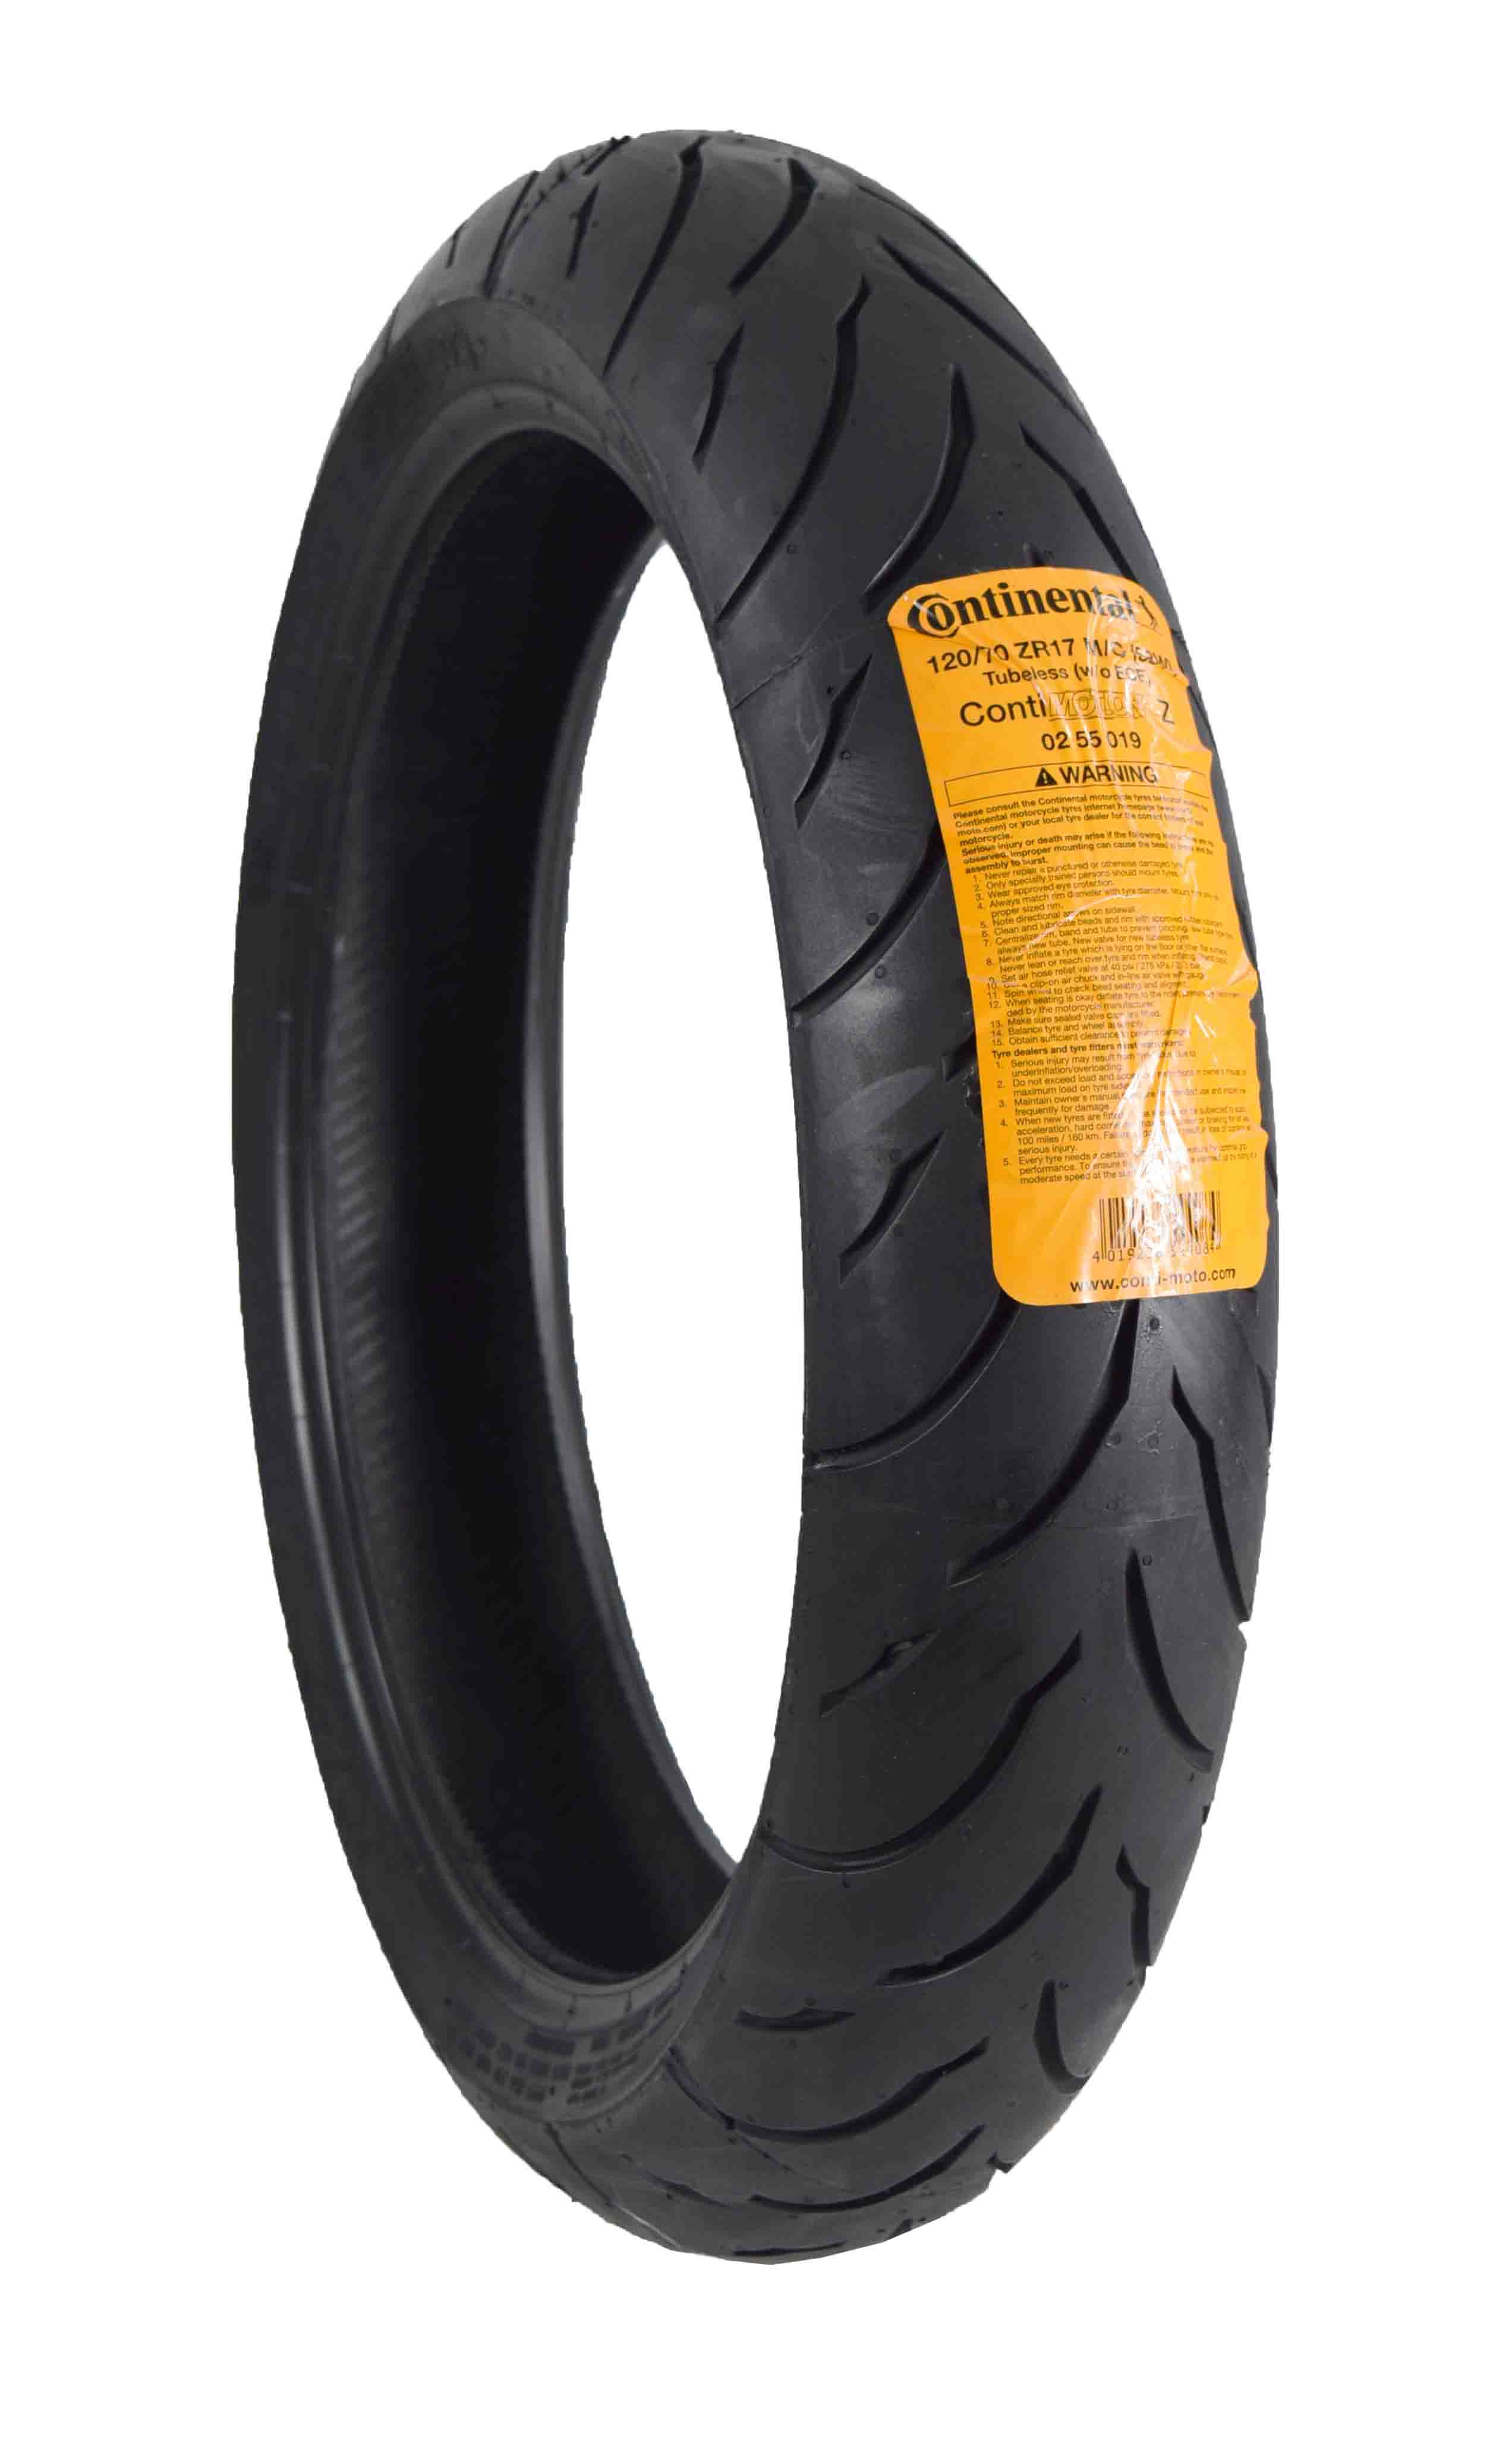 Continental-120-70-17-Front-Motorcycle-Tire-image-1